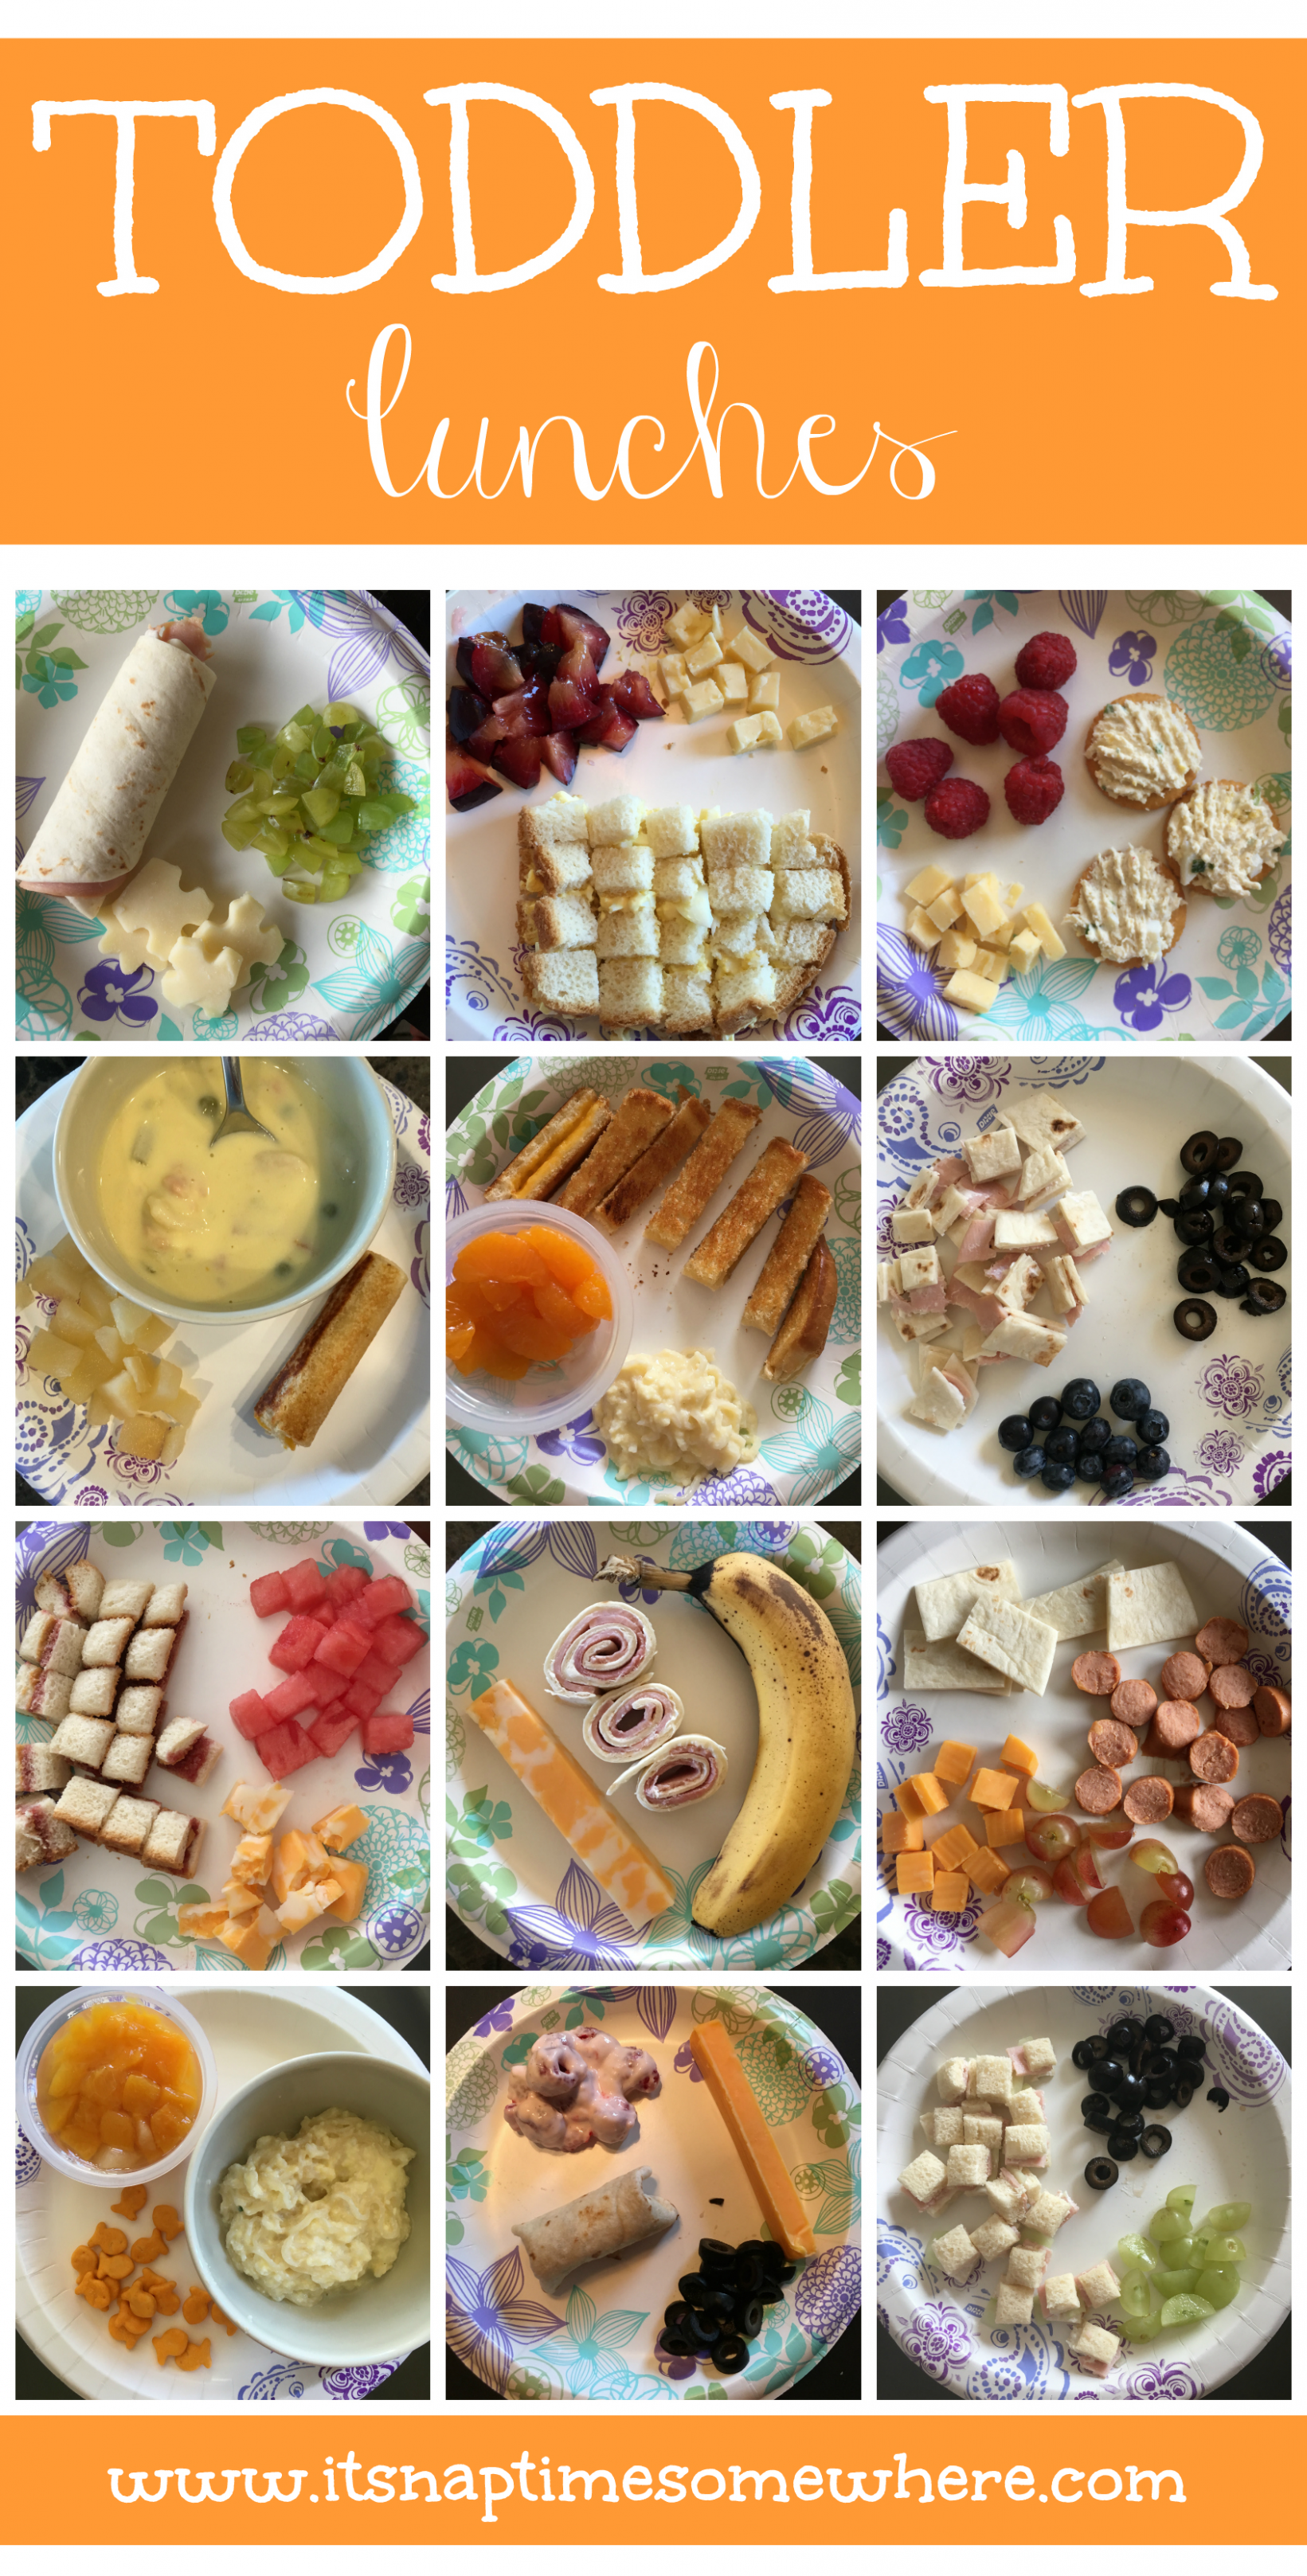 TODDLER MEALS | Baby eating, Baby food recipes, Kids meals